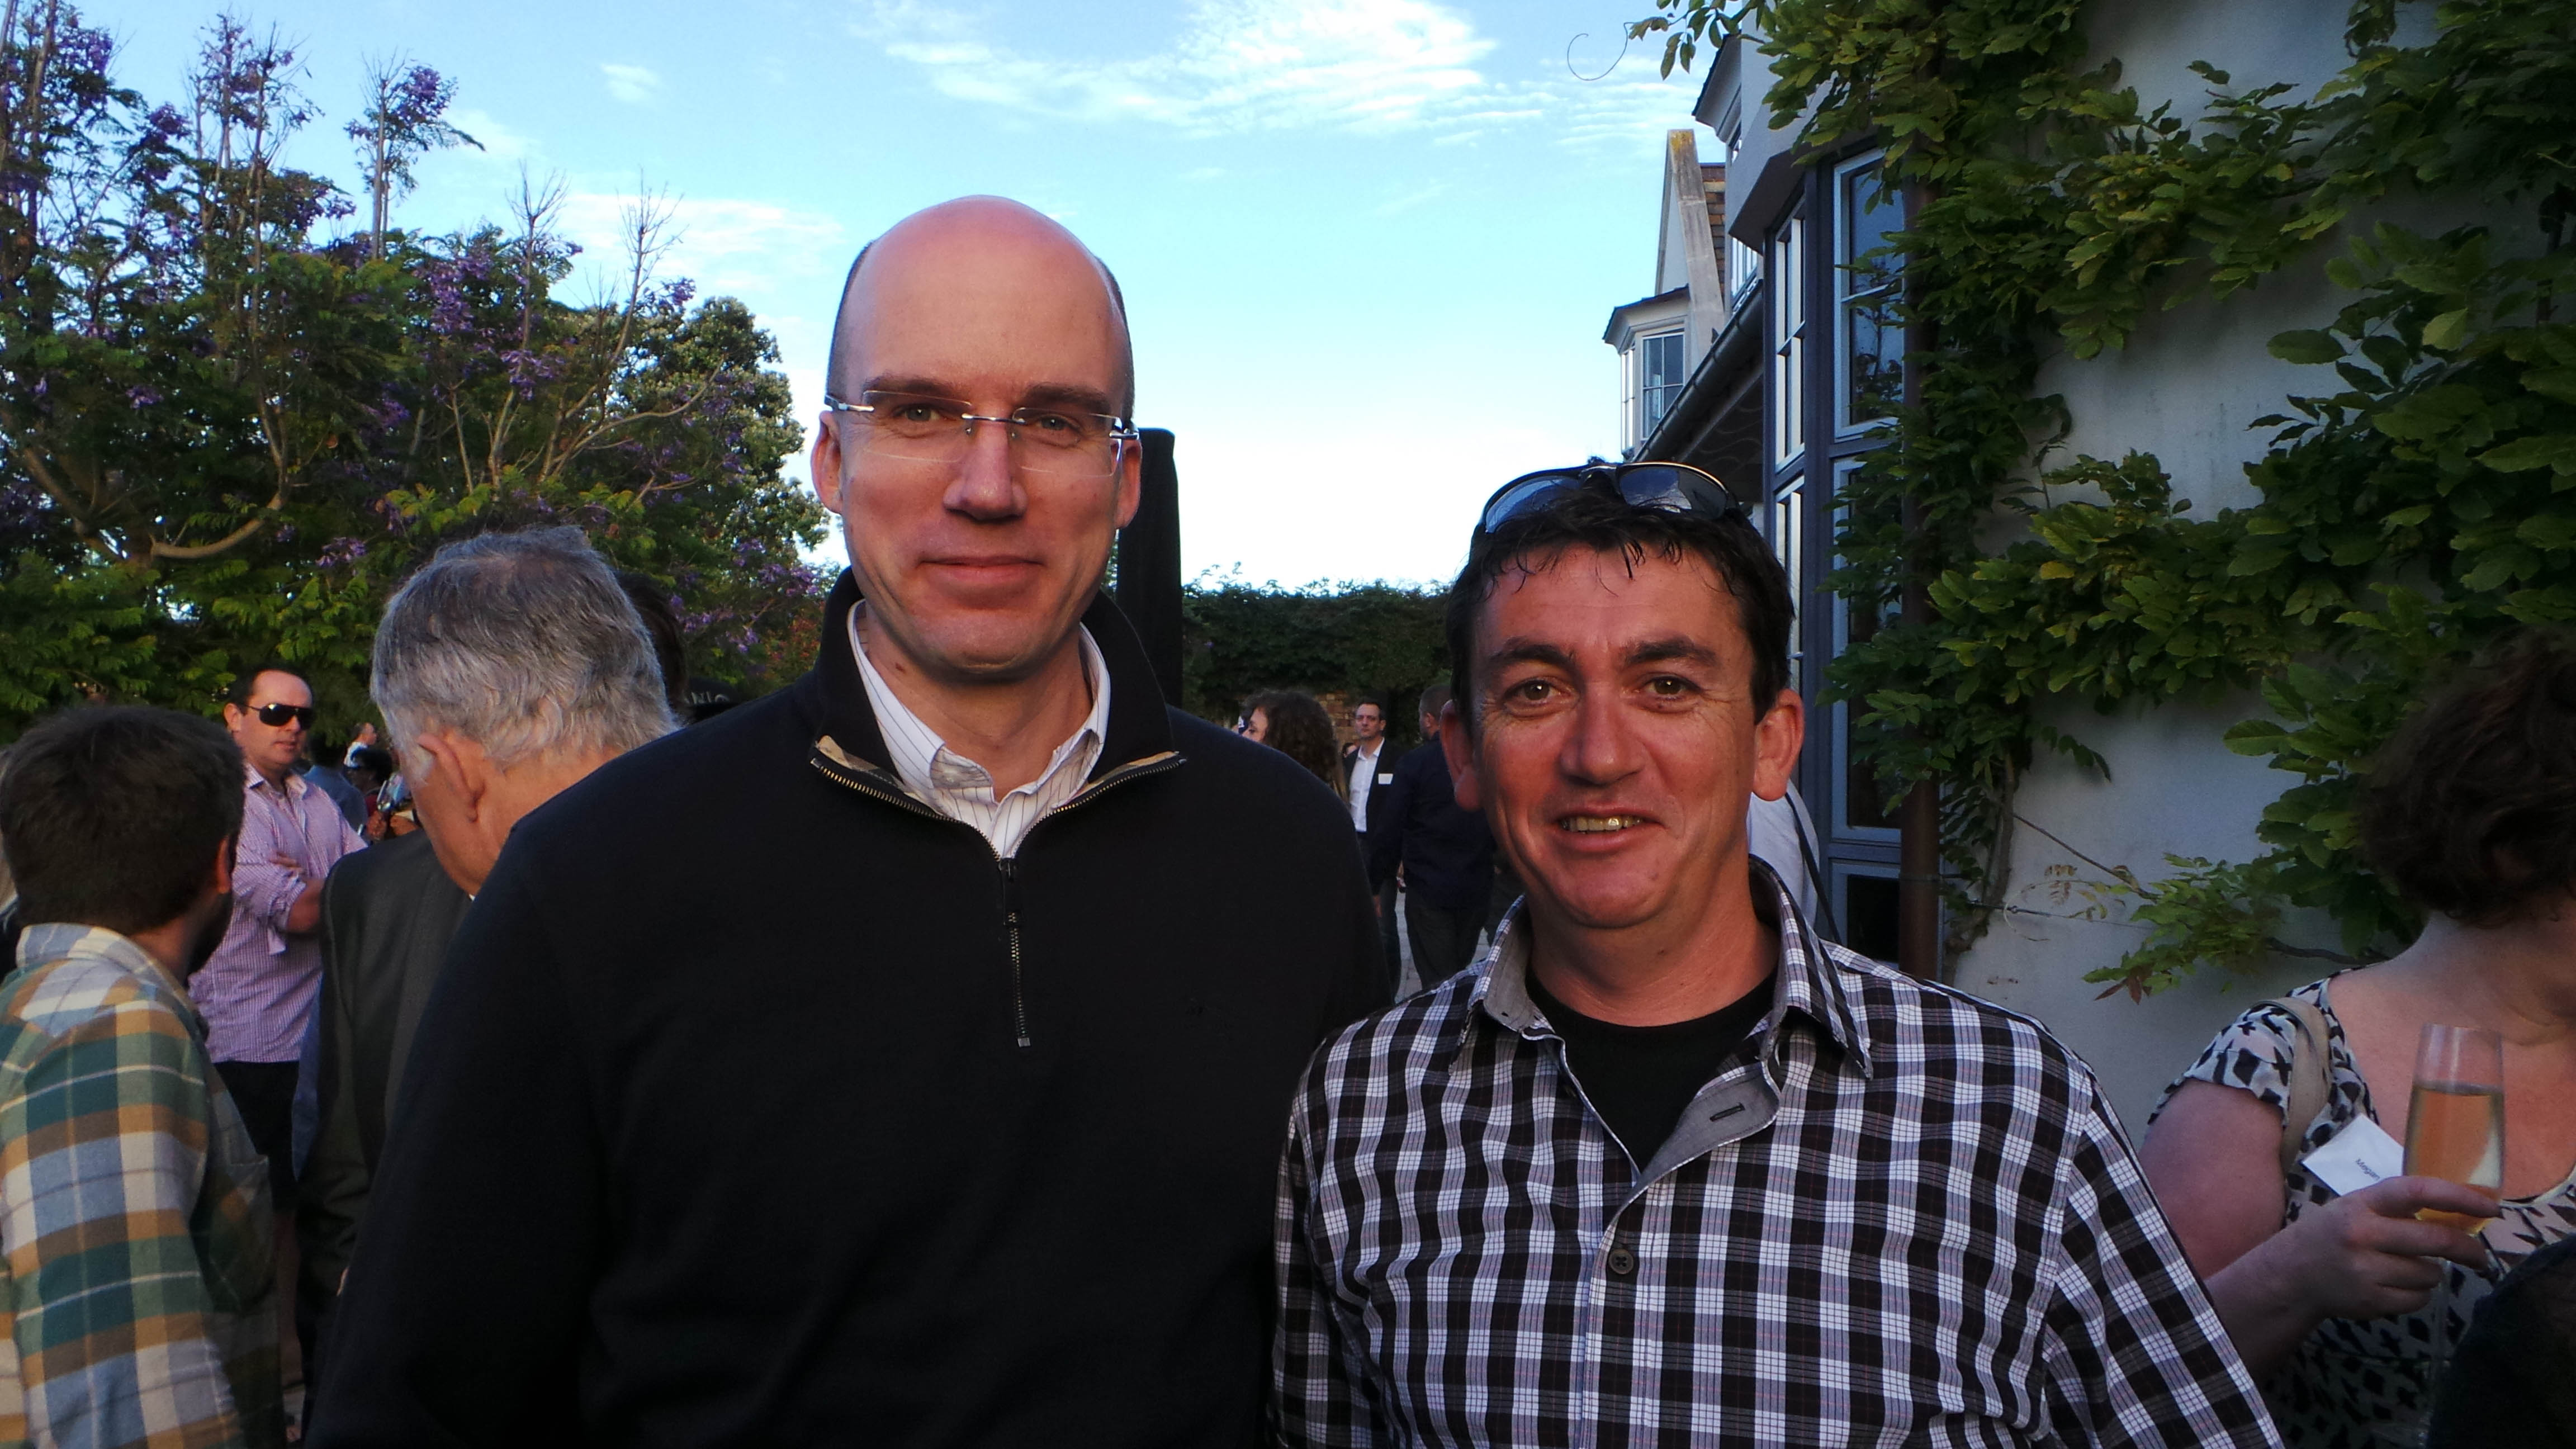 Lentino poses with EuroDNS founder Xavier Buck (left).